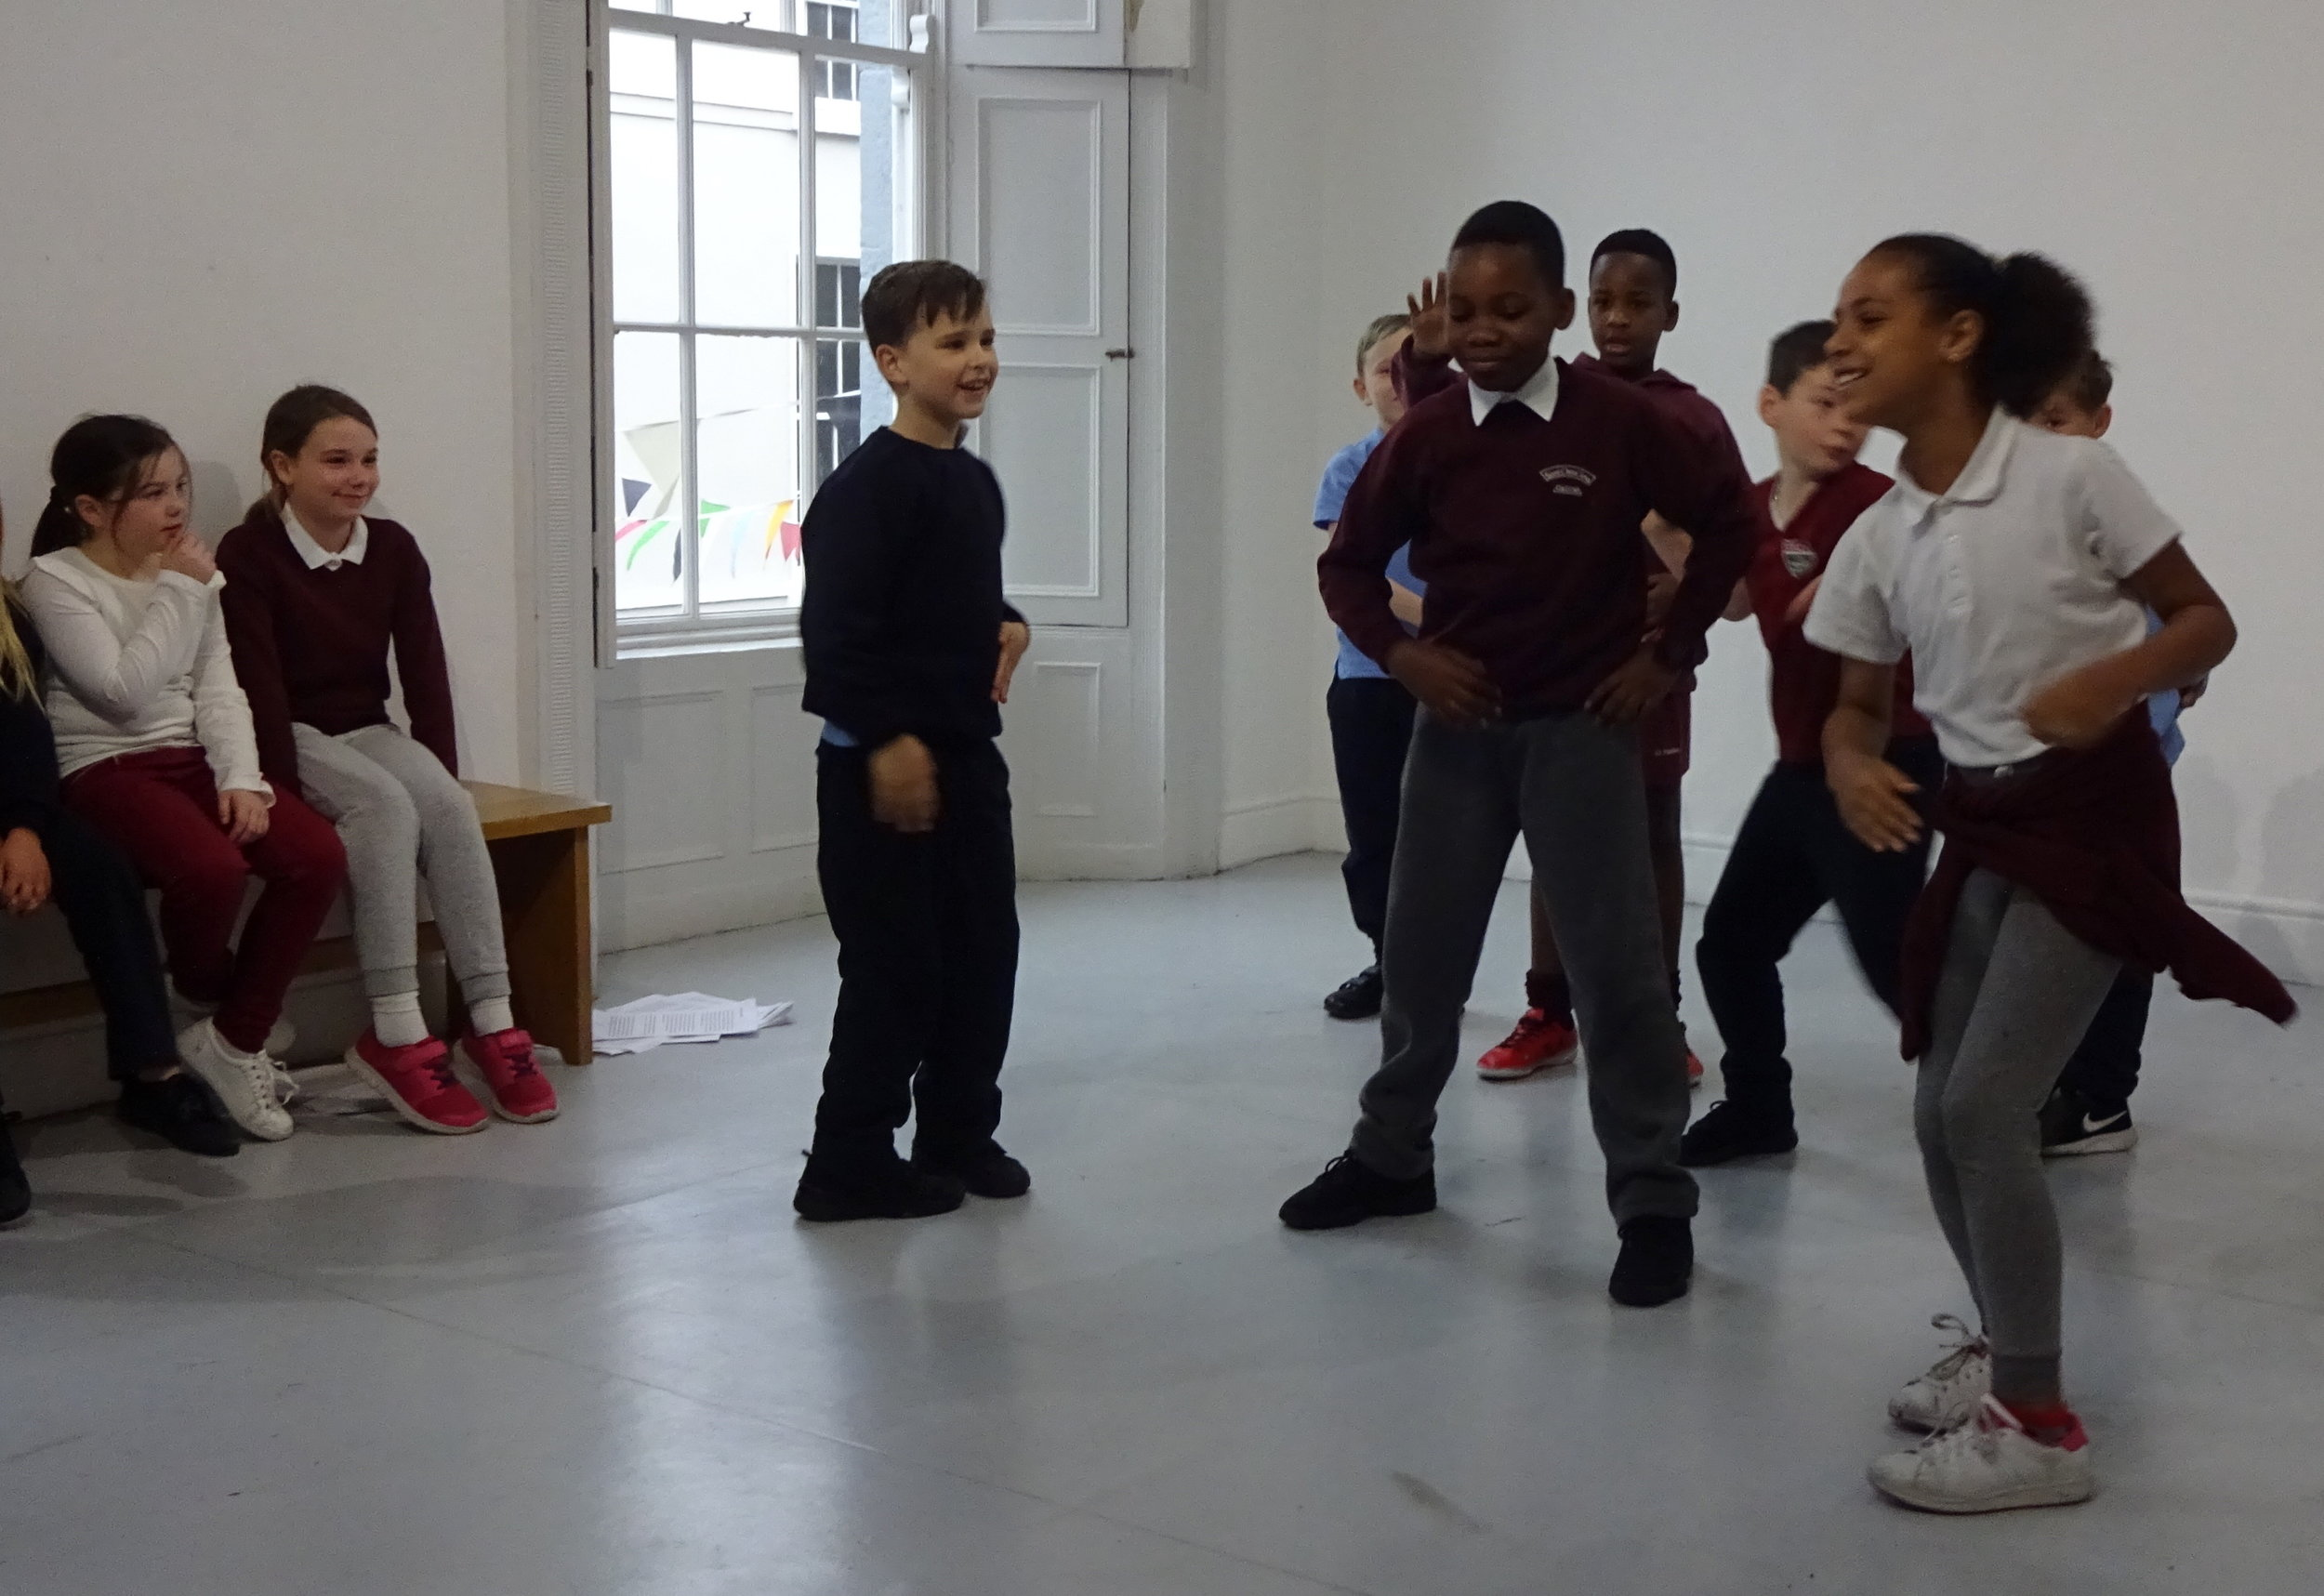 As a way of exploring the movement of other animals, students first did their own choreography of everyday human gestures.